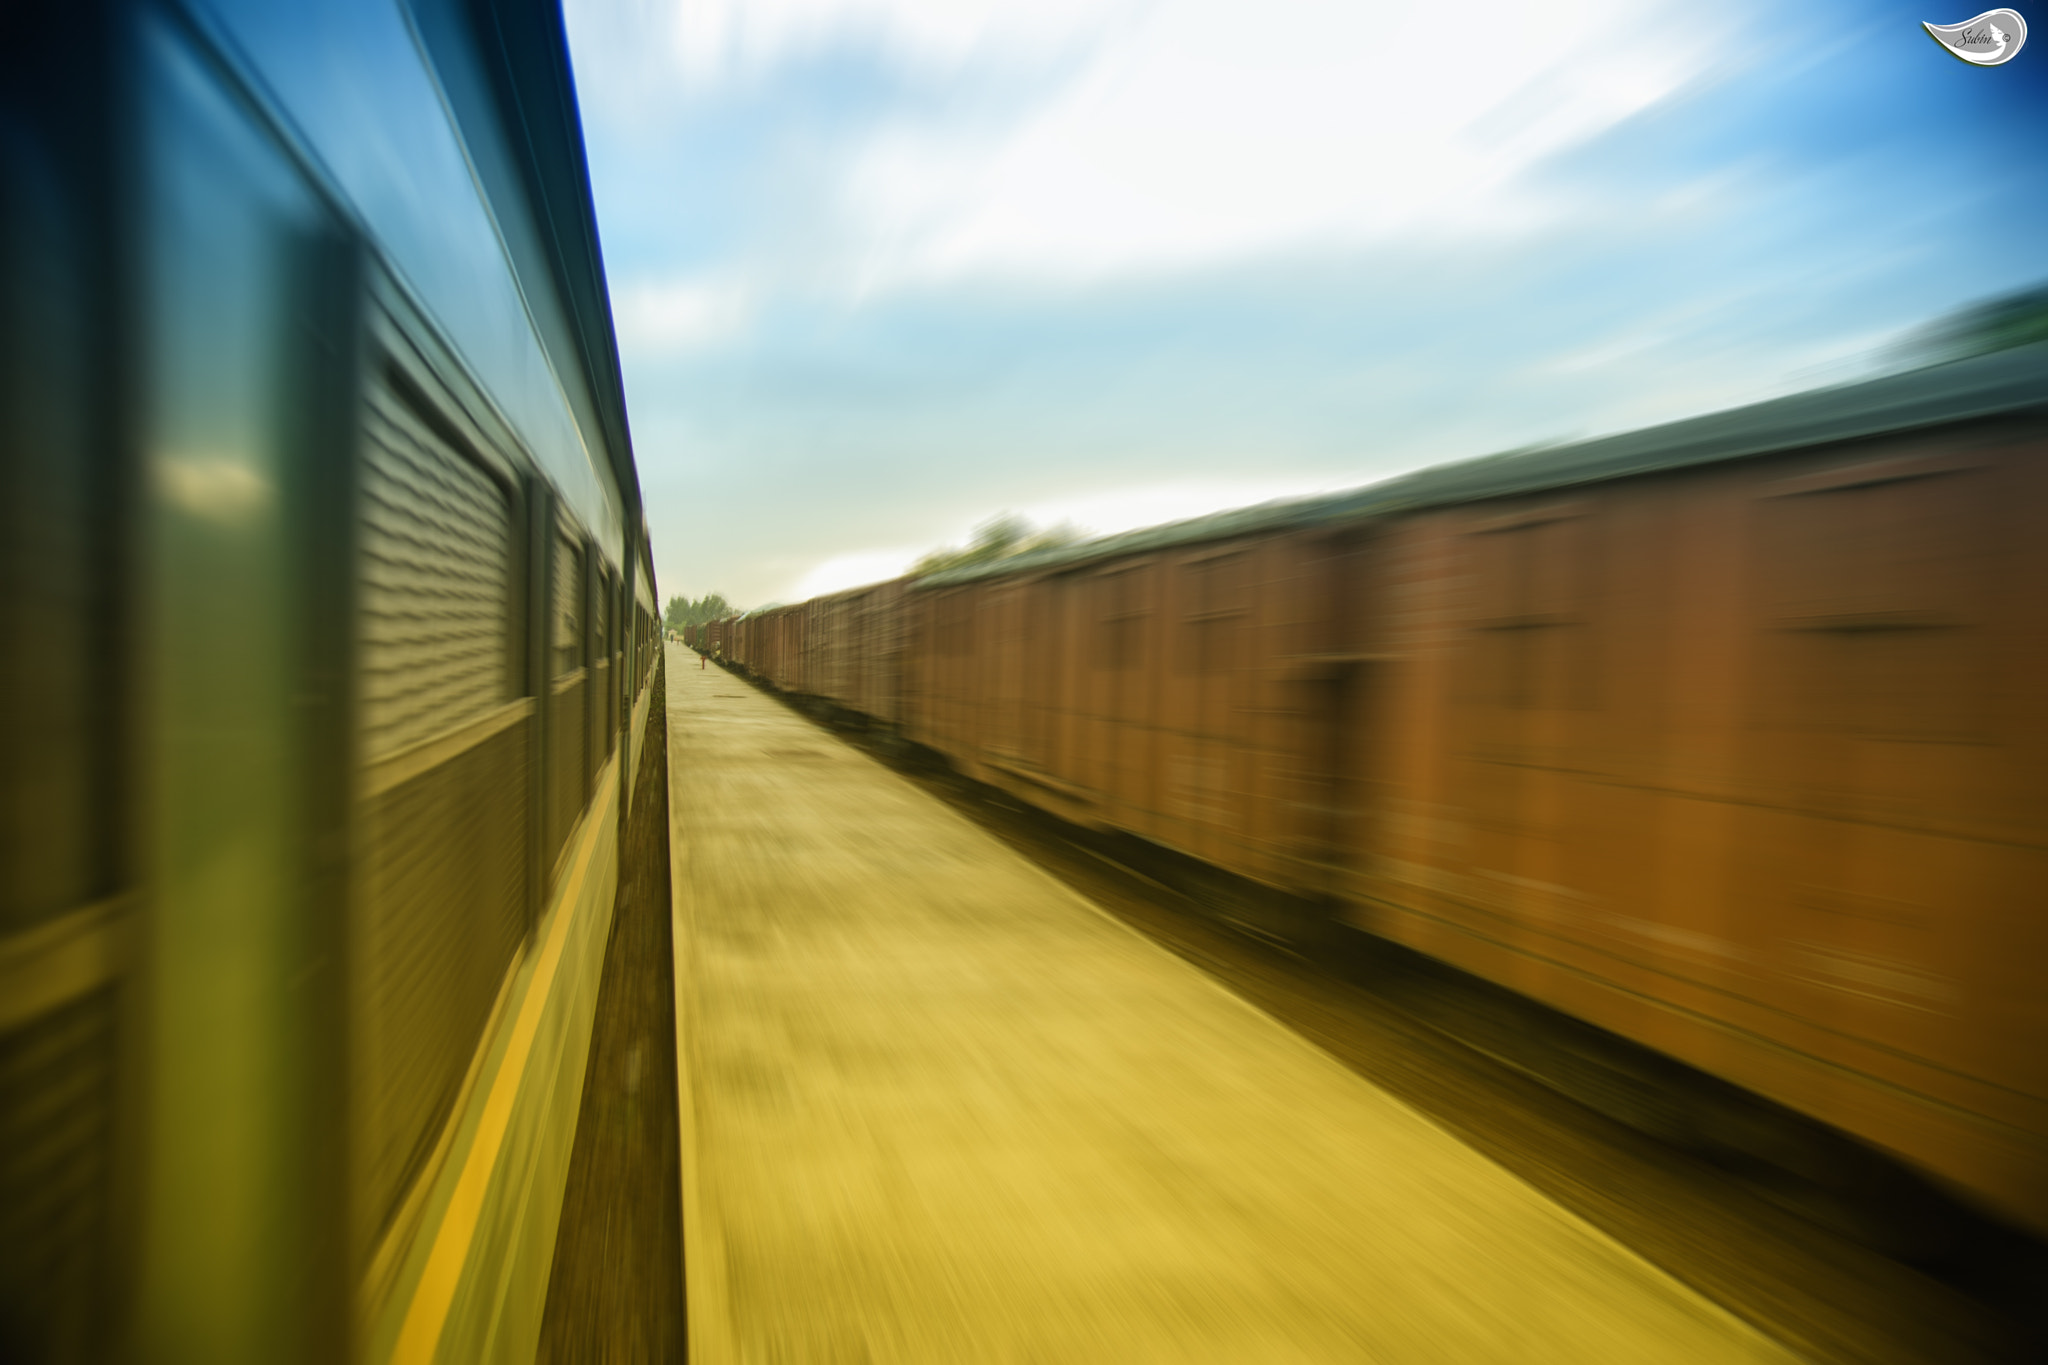 Photograph Train by Subin Truong on 500px